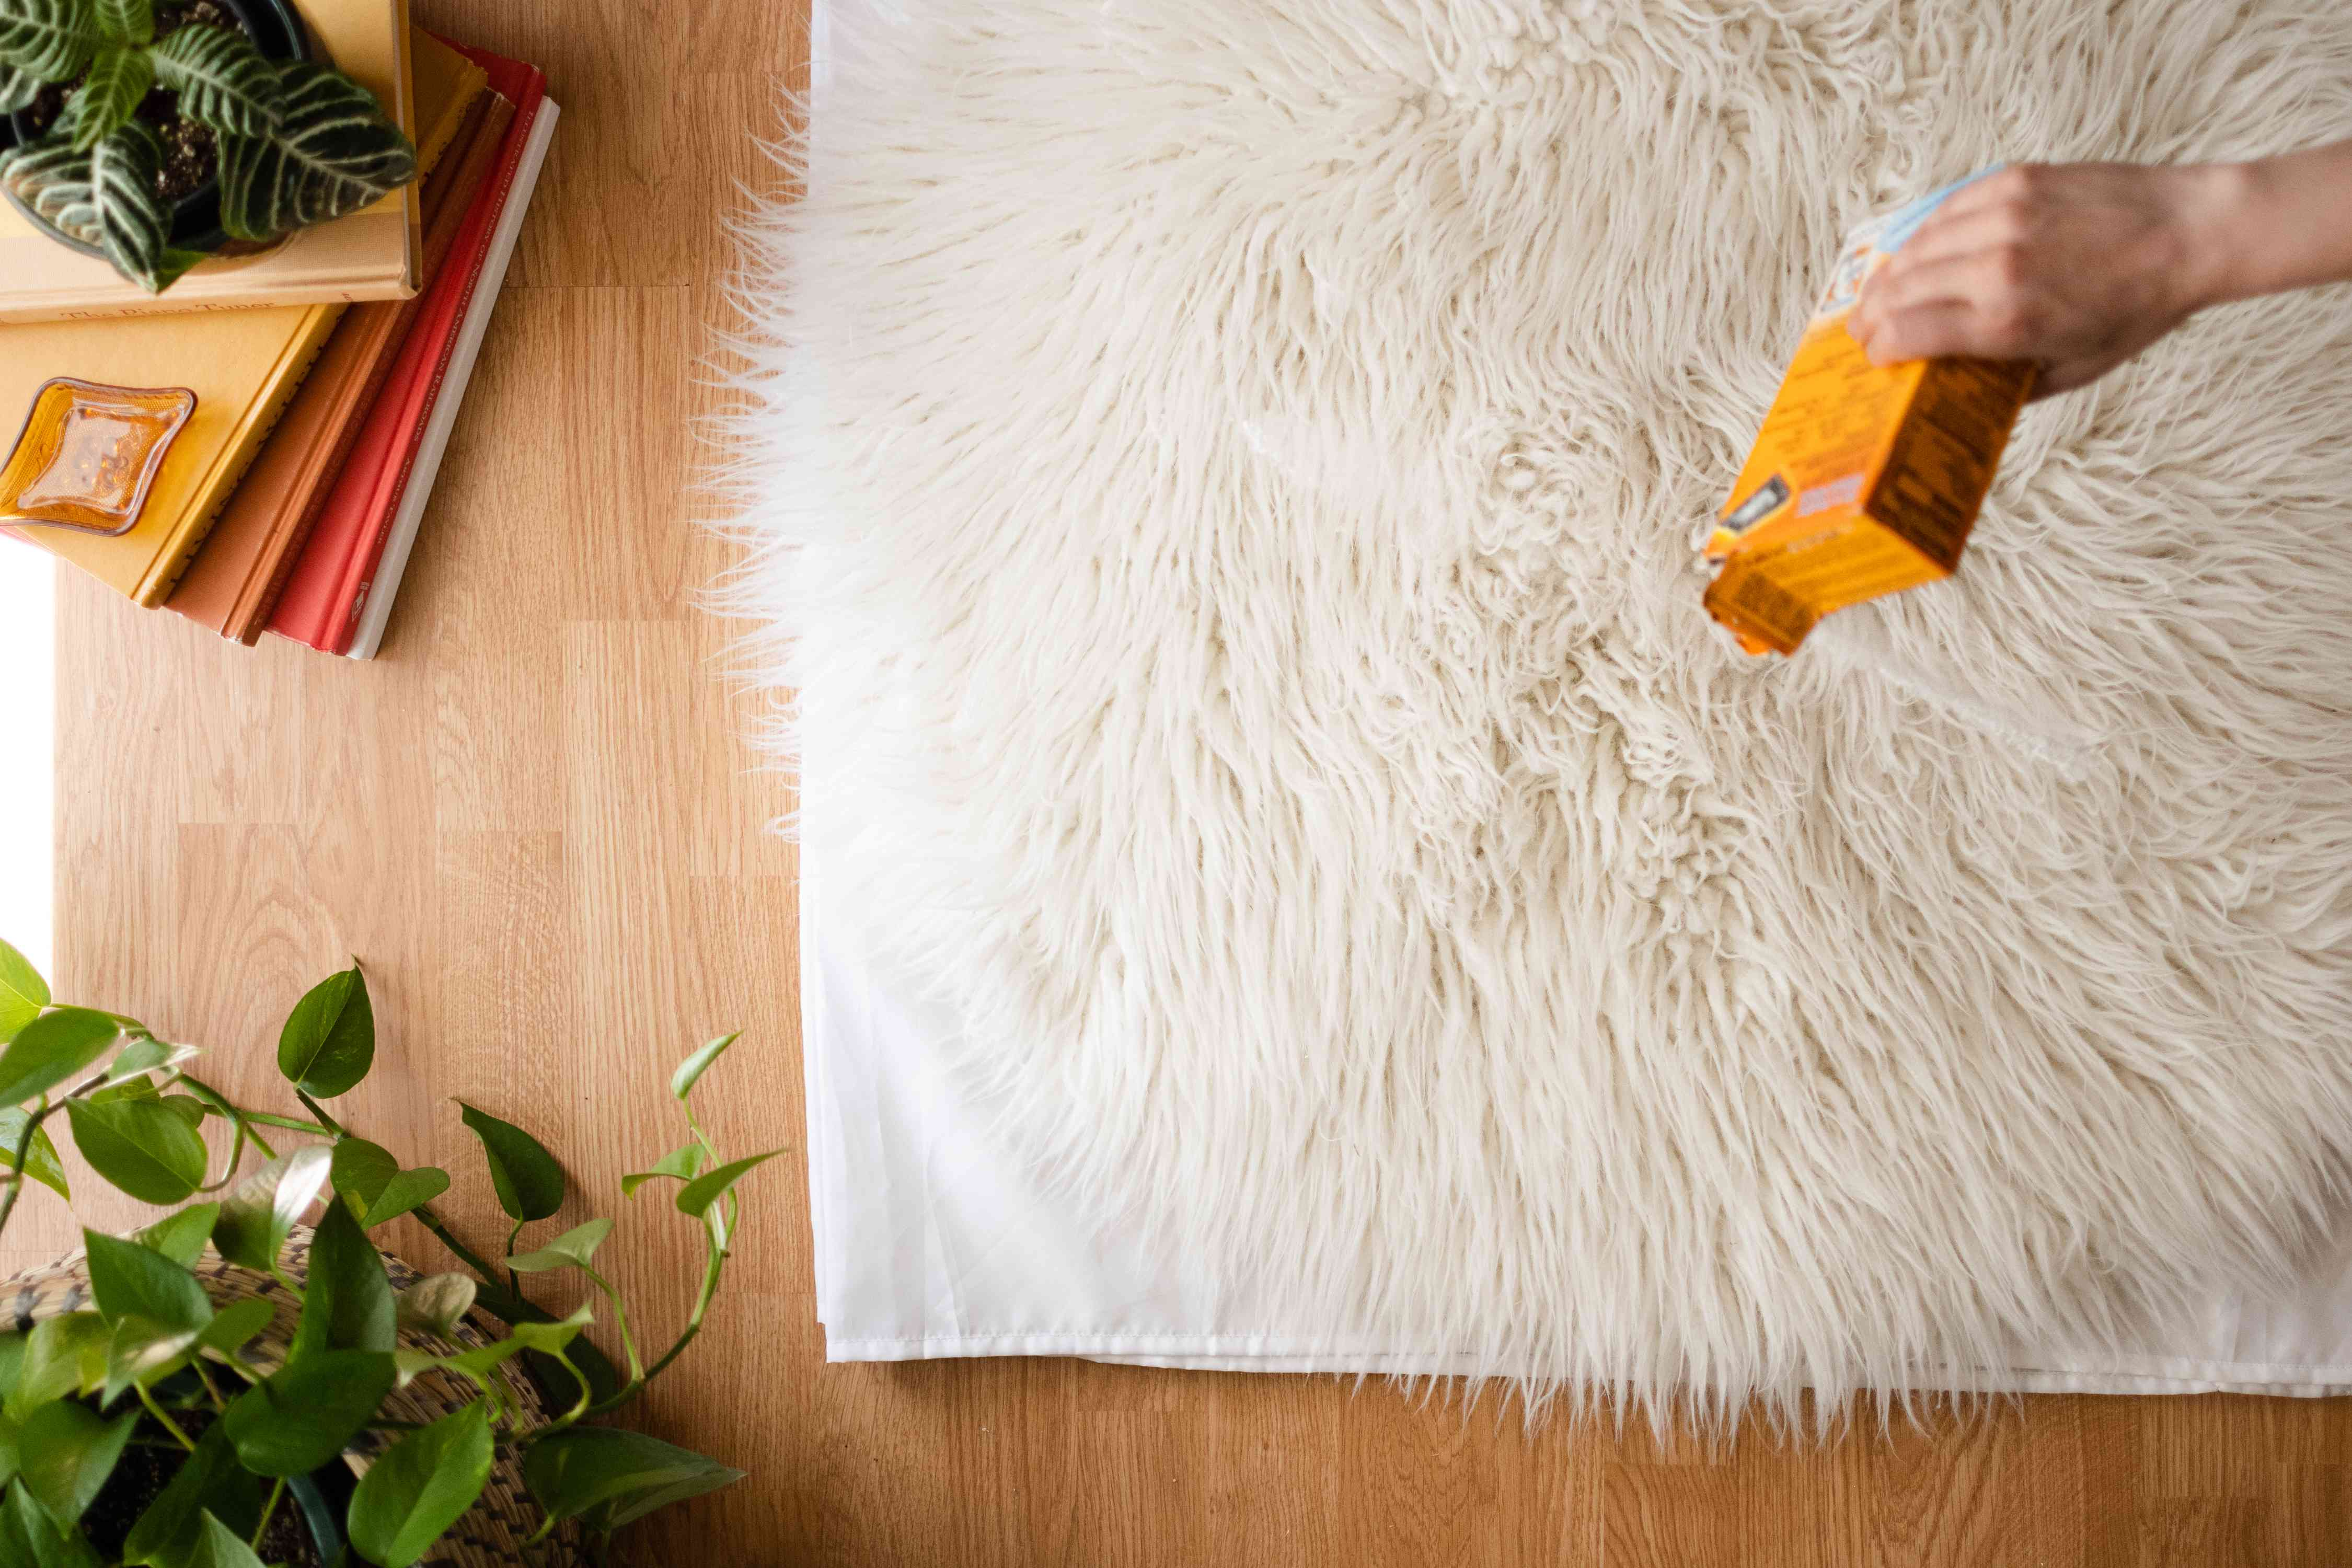 Baking soda poured on to white shag rug to brighten and deodorize